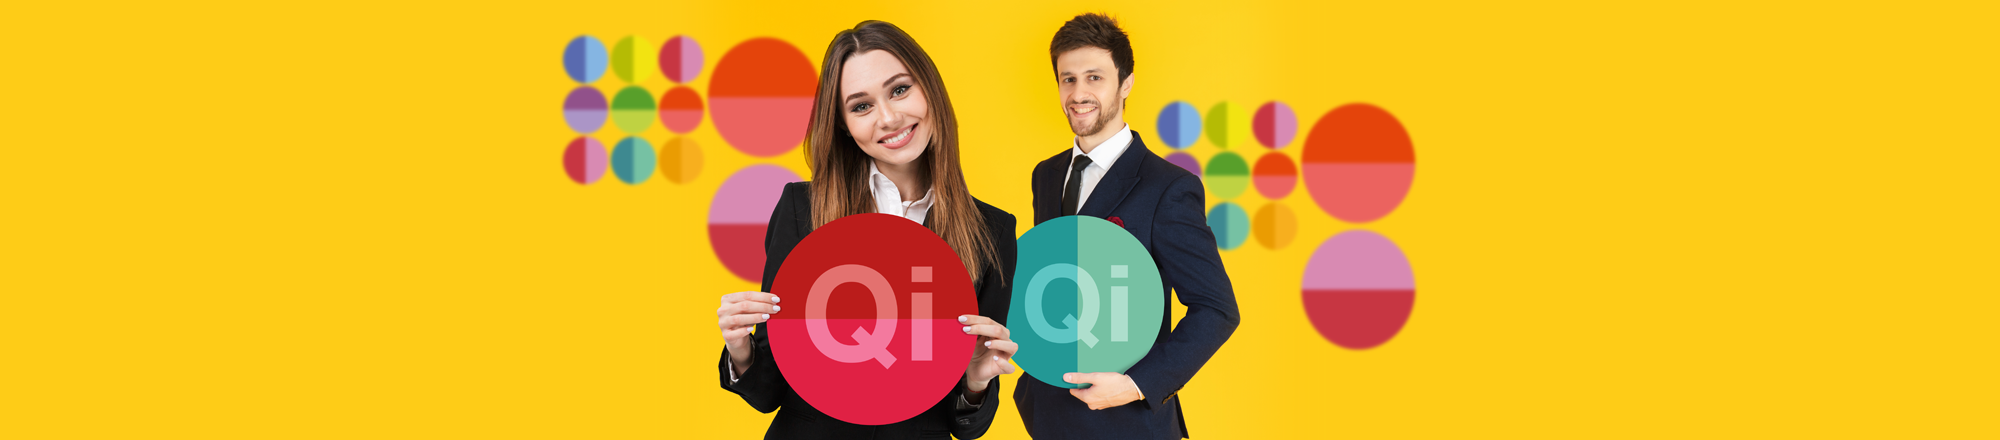 Qi finance business